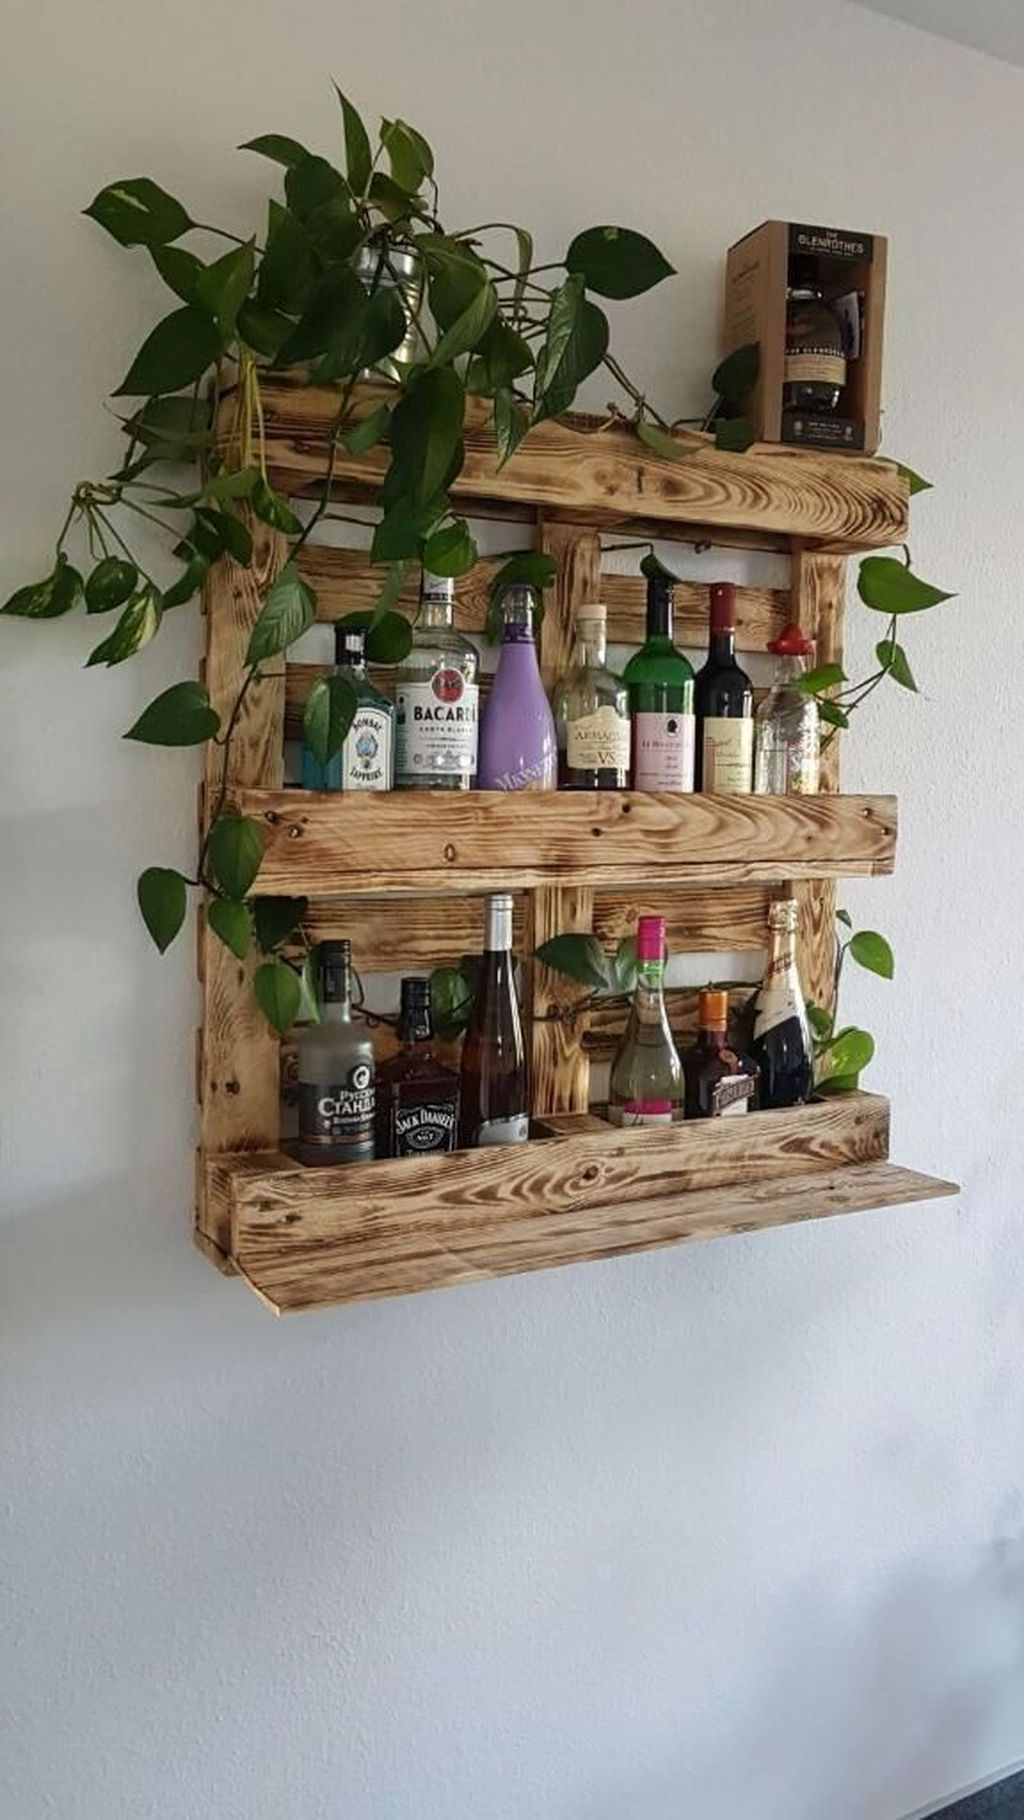 Regale Aus Palettenholz 20+ Attractive Wooden Pallet Ideas You Will Love | Bar-regale, Palettenholz, Regal Aus Paletten